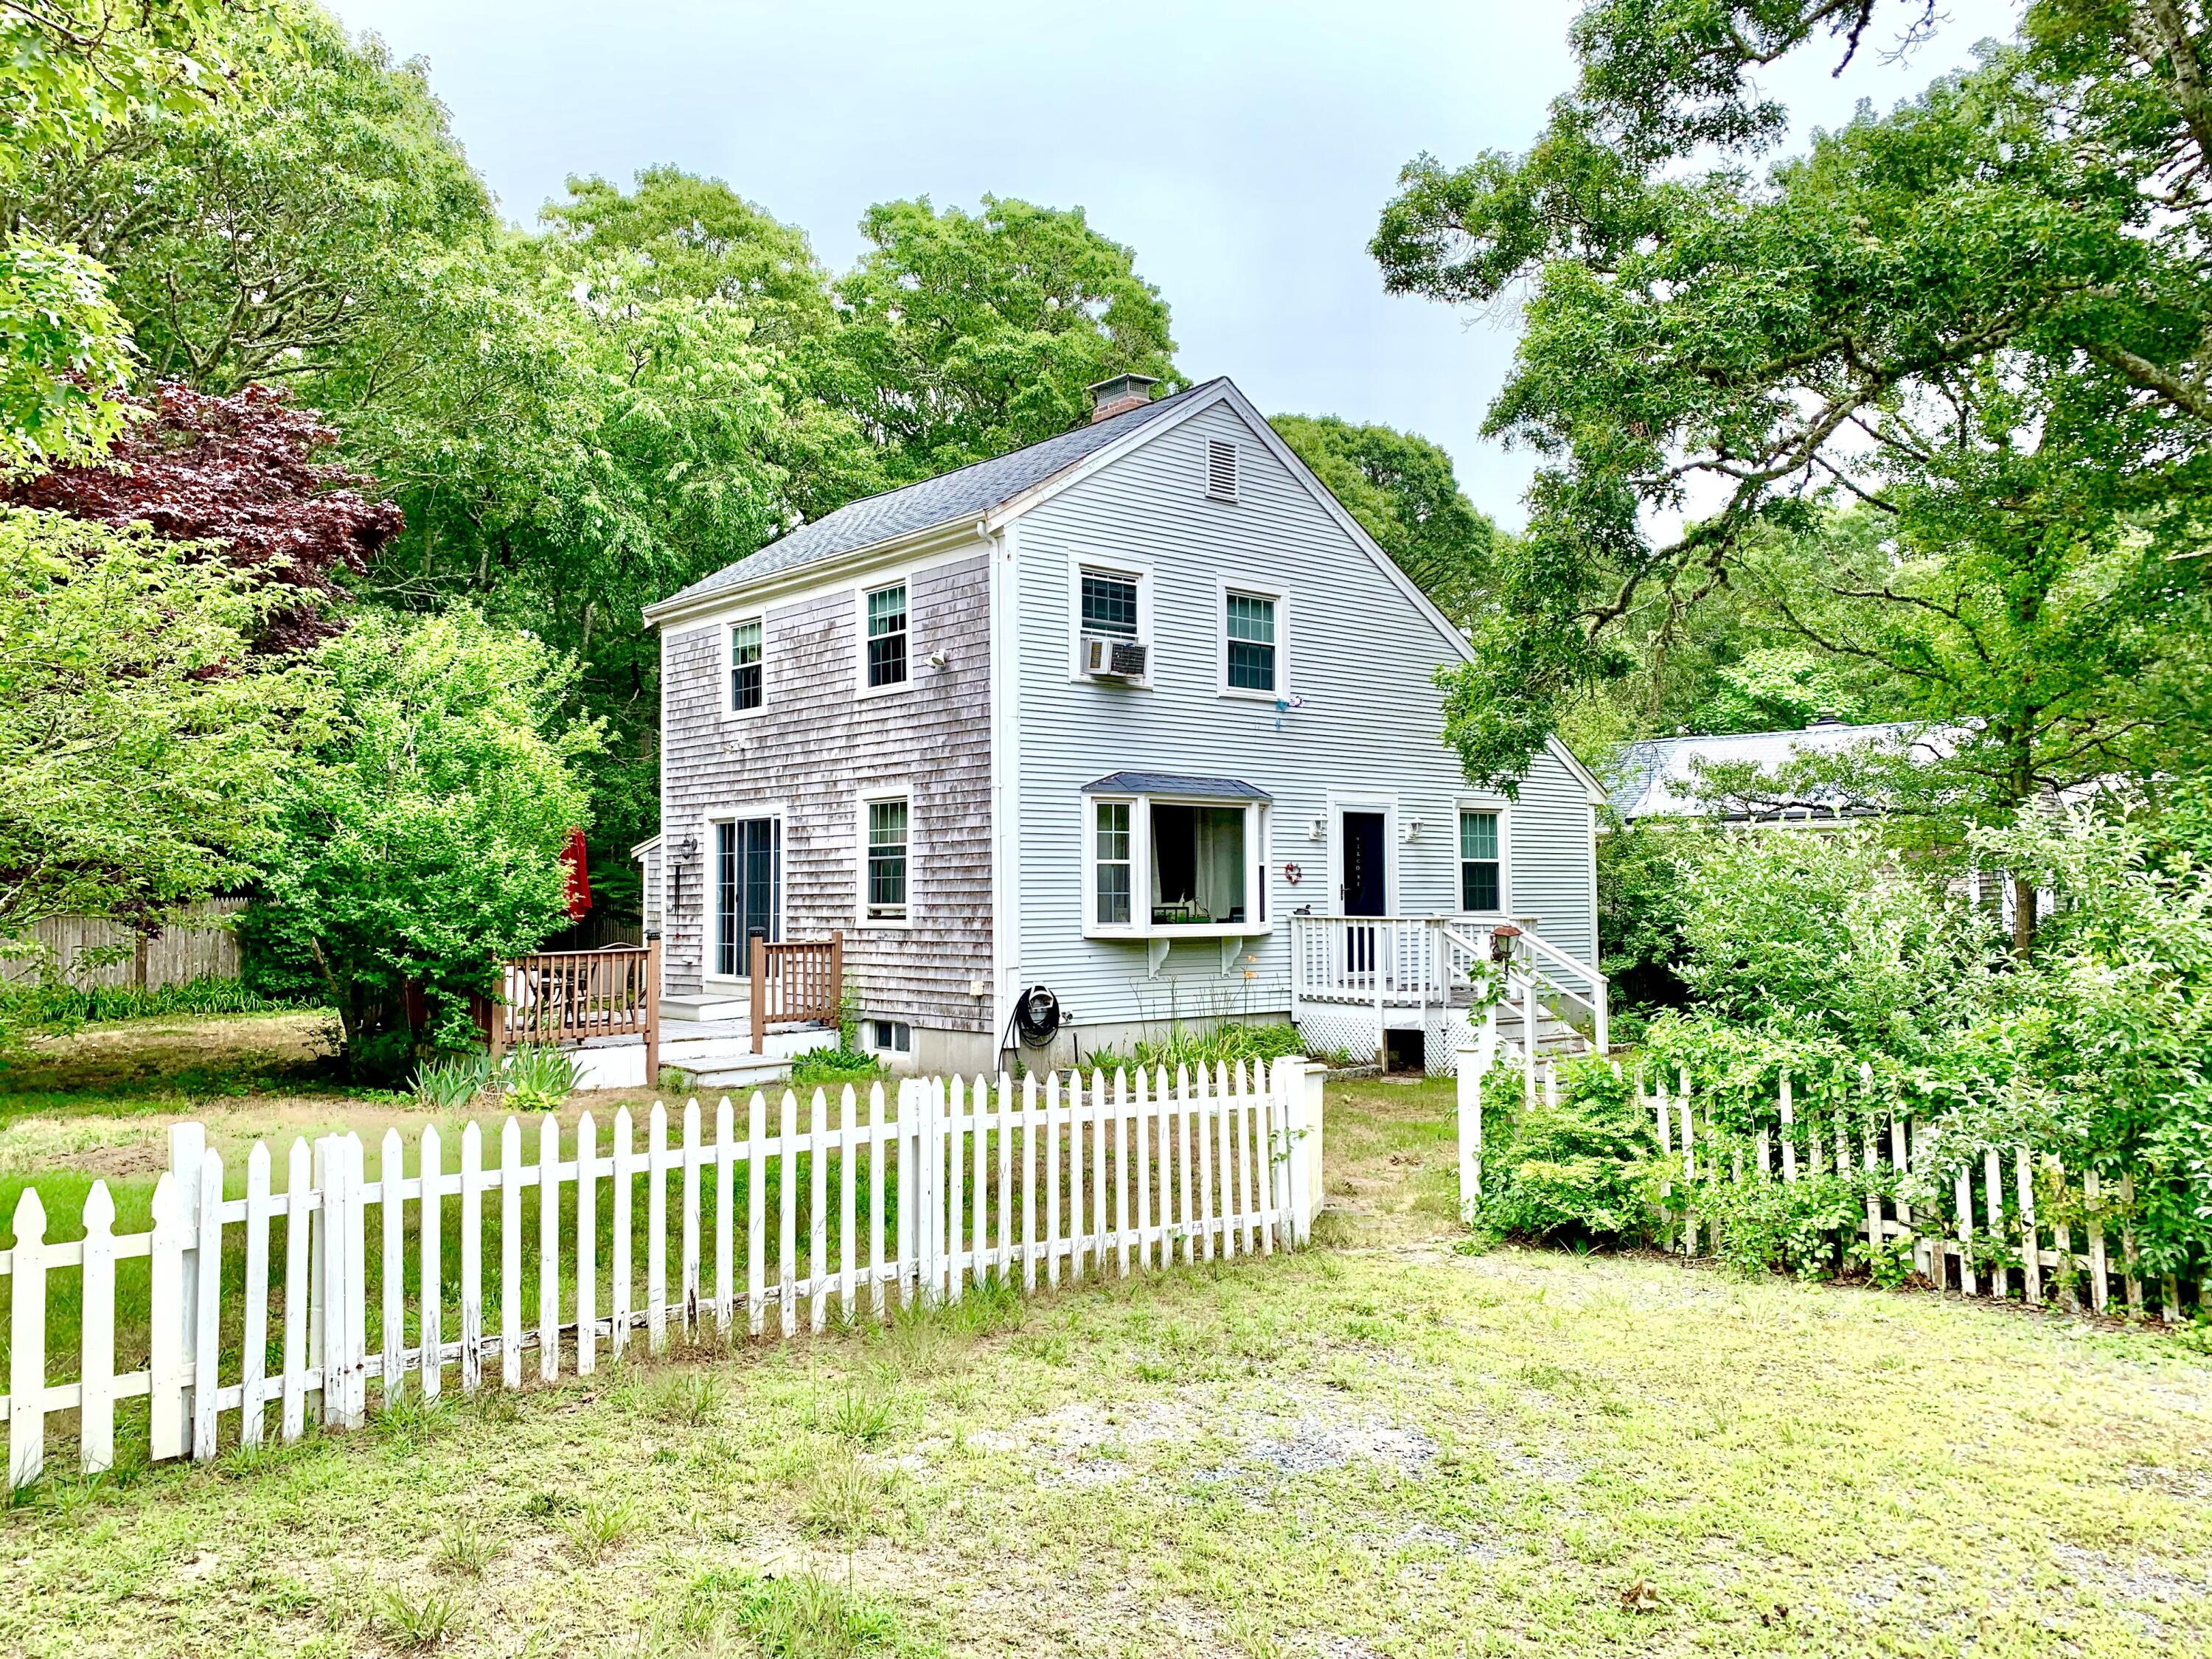 4 Butler Avenue, West Yarmouth MA, 02673 details